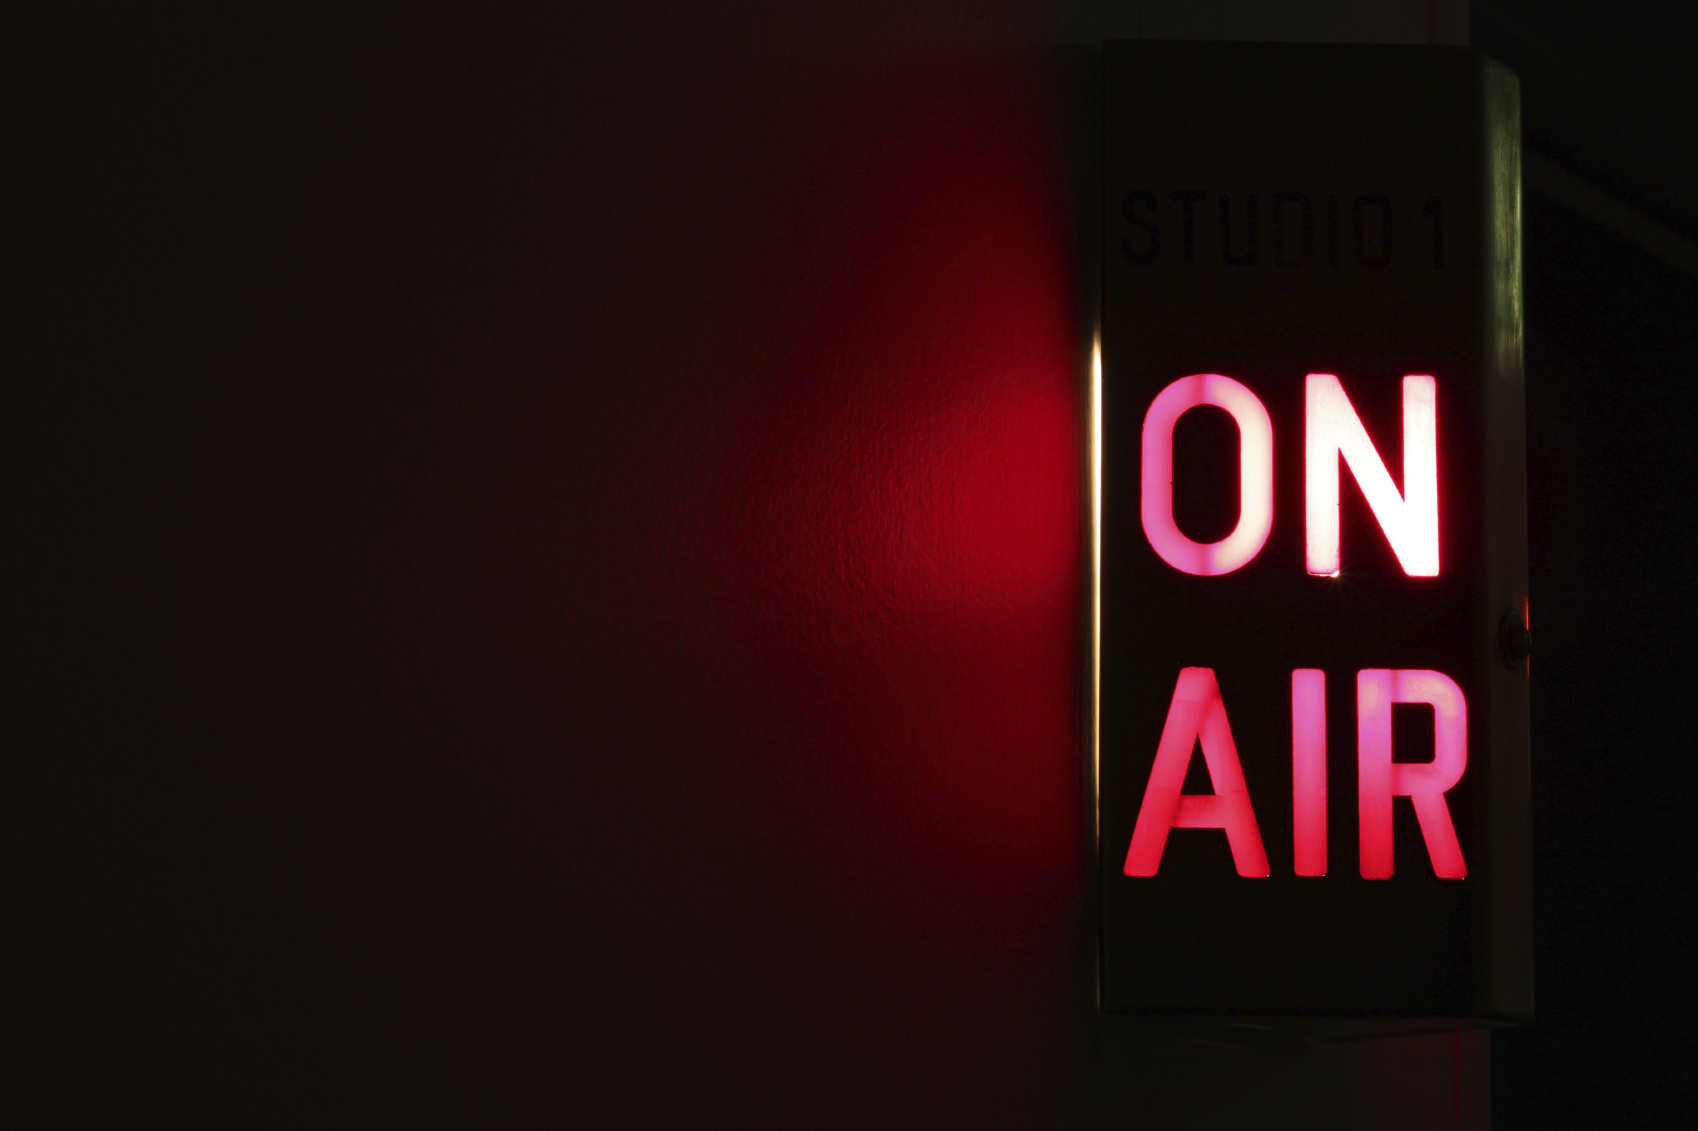 On air now